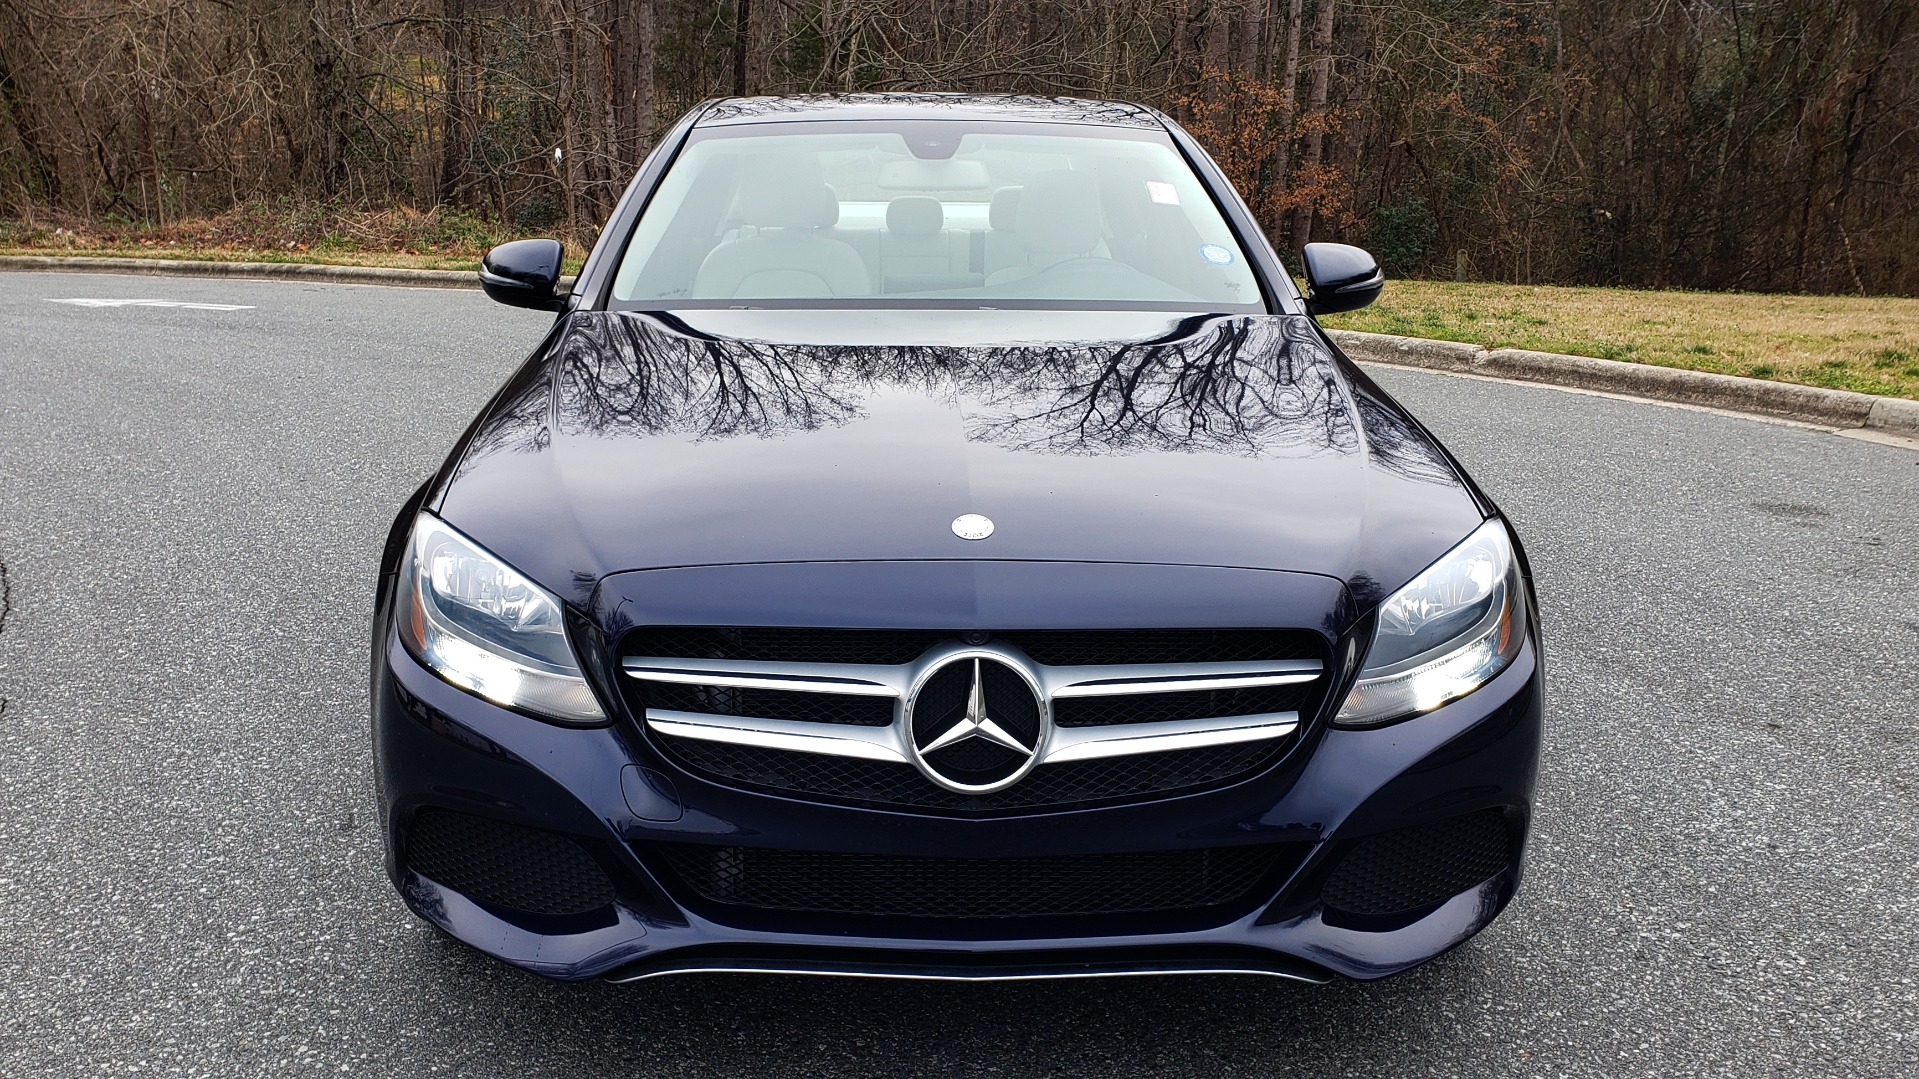 Used 2016 Mercedes-Benz C-CLASS C 300 / PREM PKG / PANO-ROOF / BSA / HTD STS / REARVIEW for sale Sold at Formula Imports in Charlotte NC 28227 19